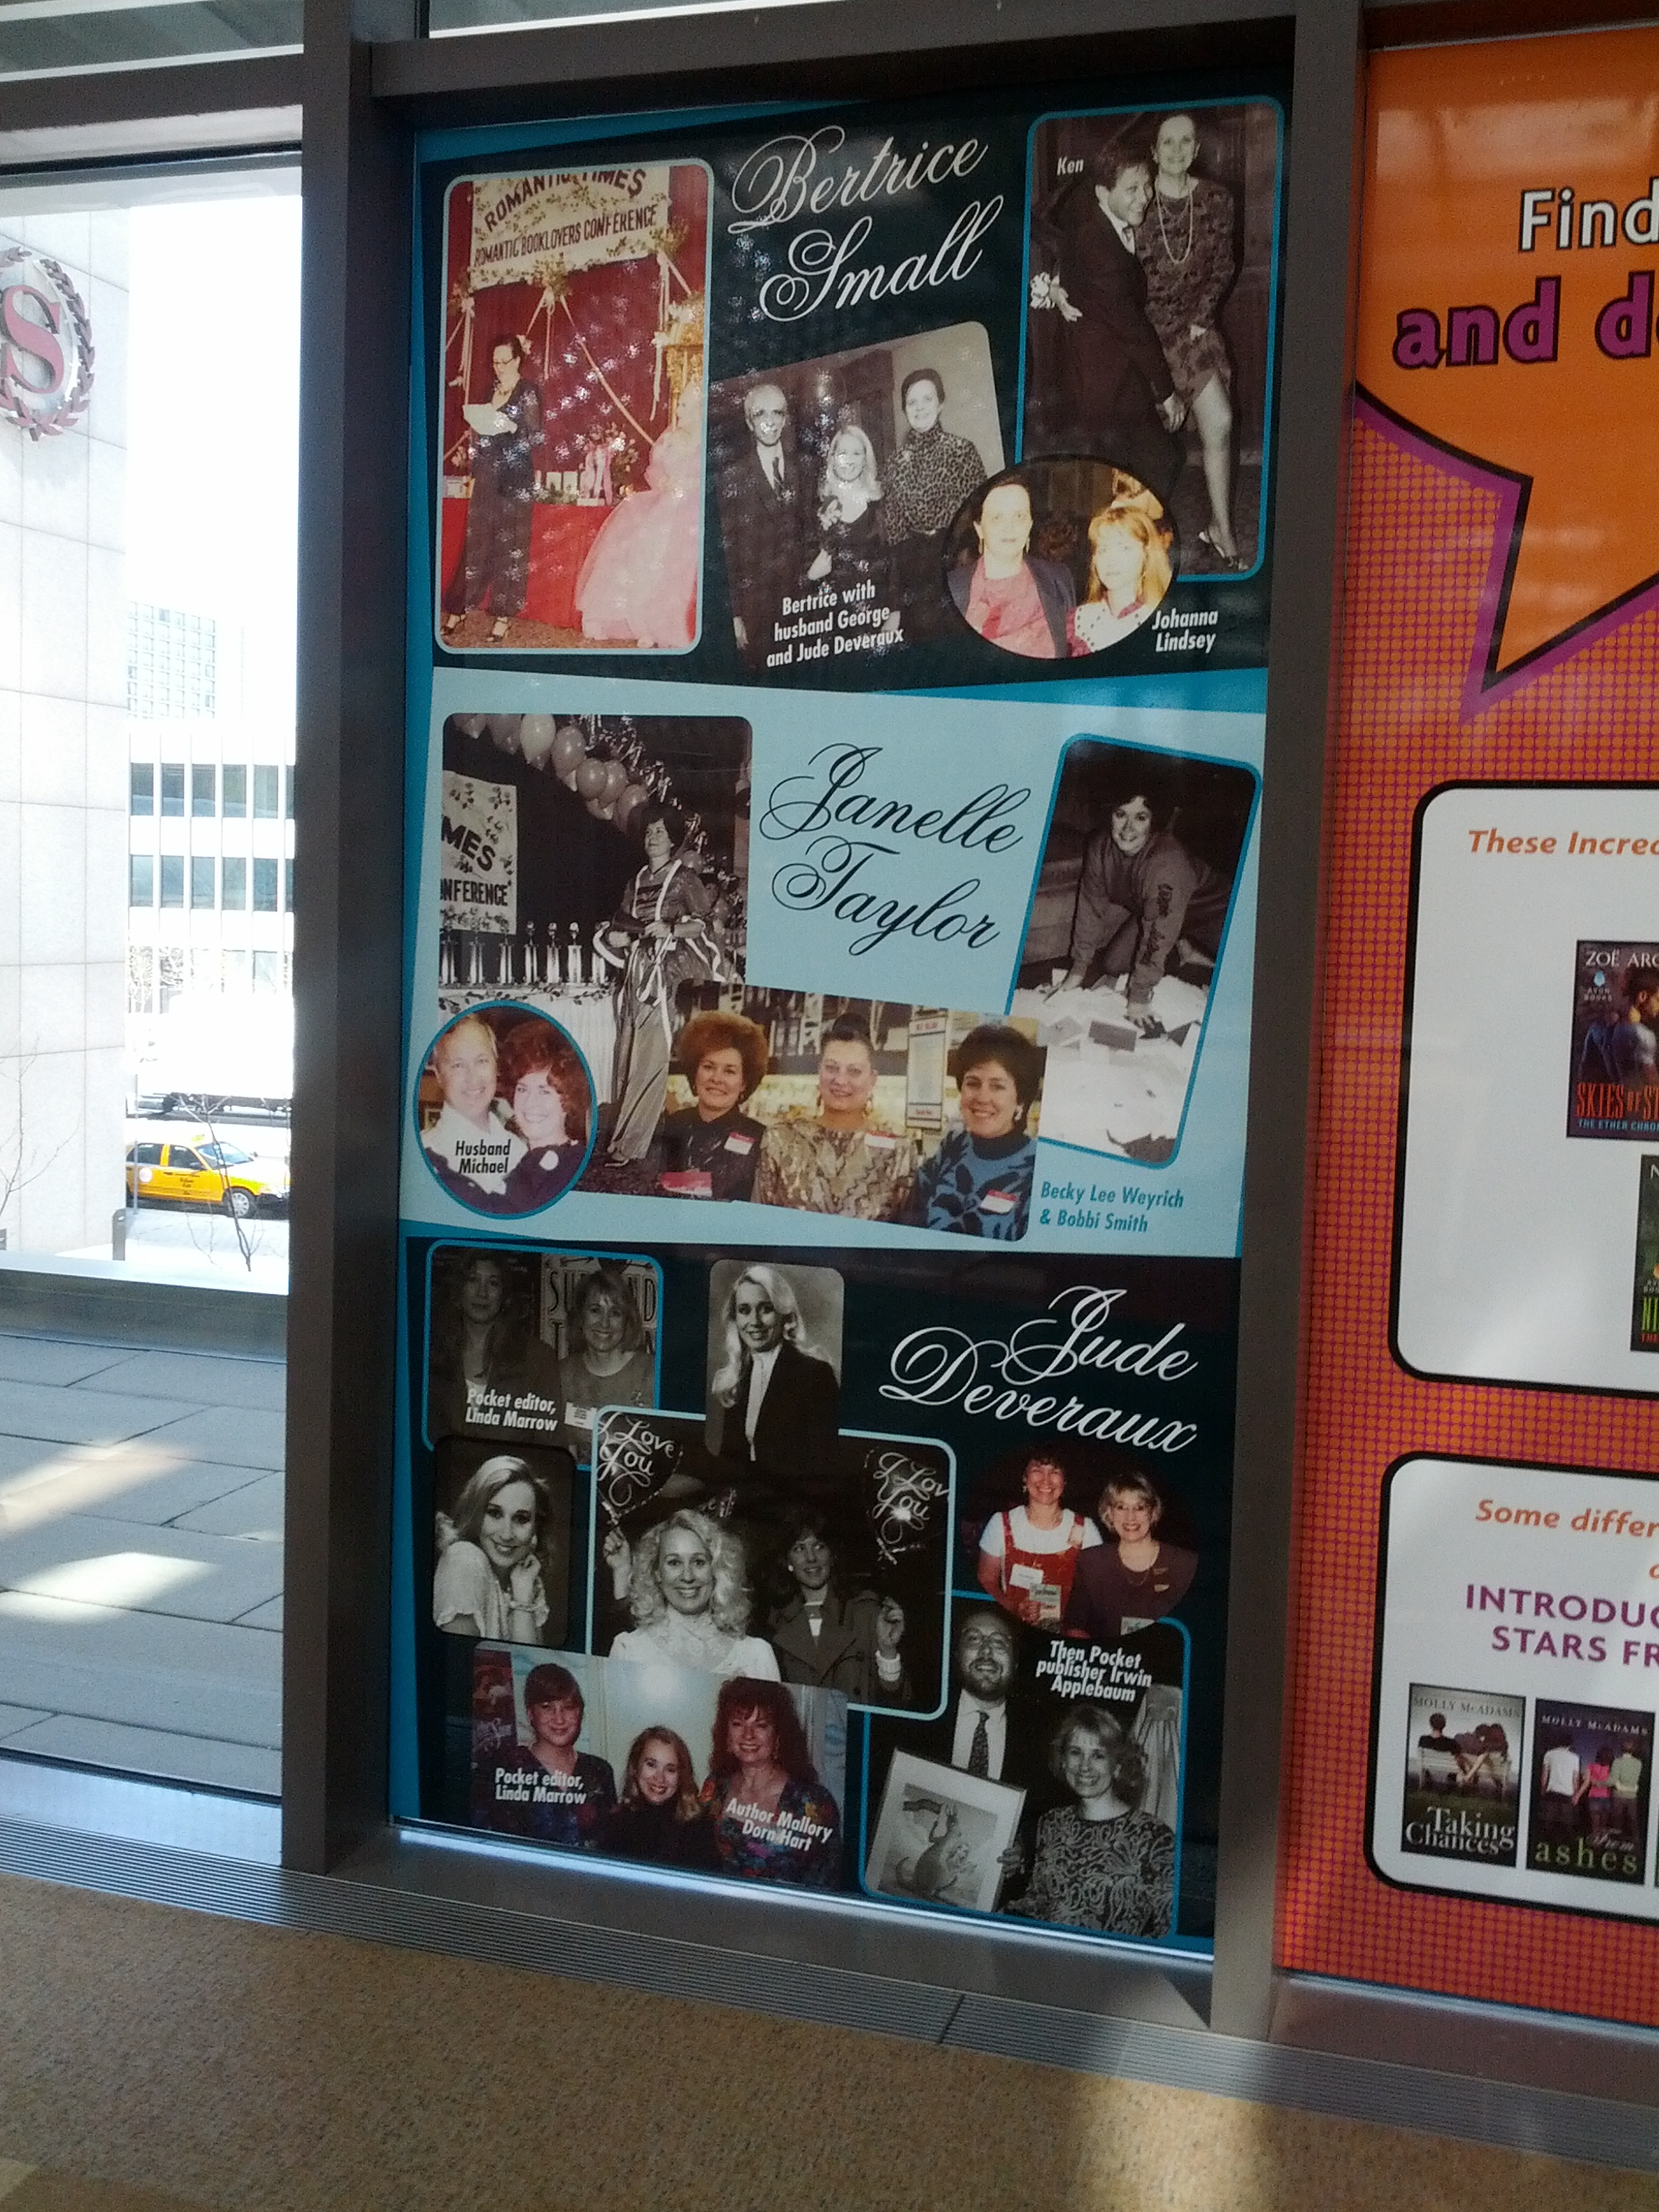 Window panels showing Jude Deveraux, Bertrice Small, and Janelle Taylor